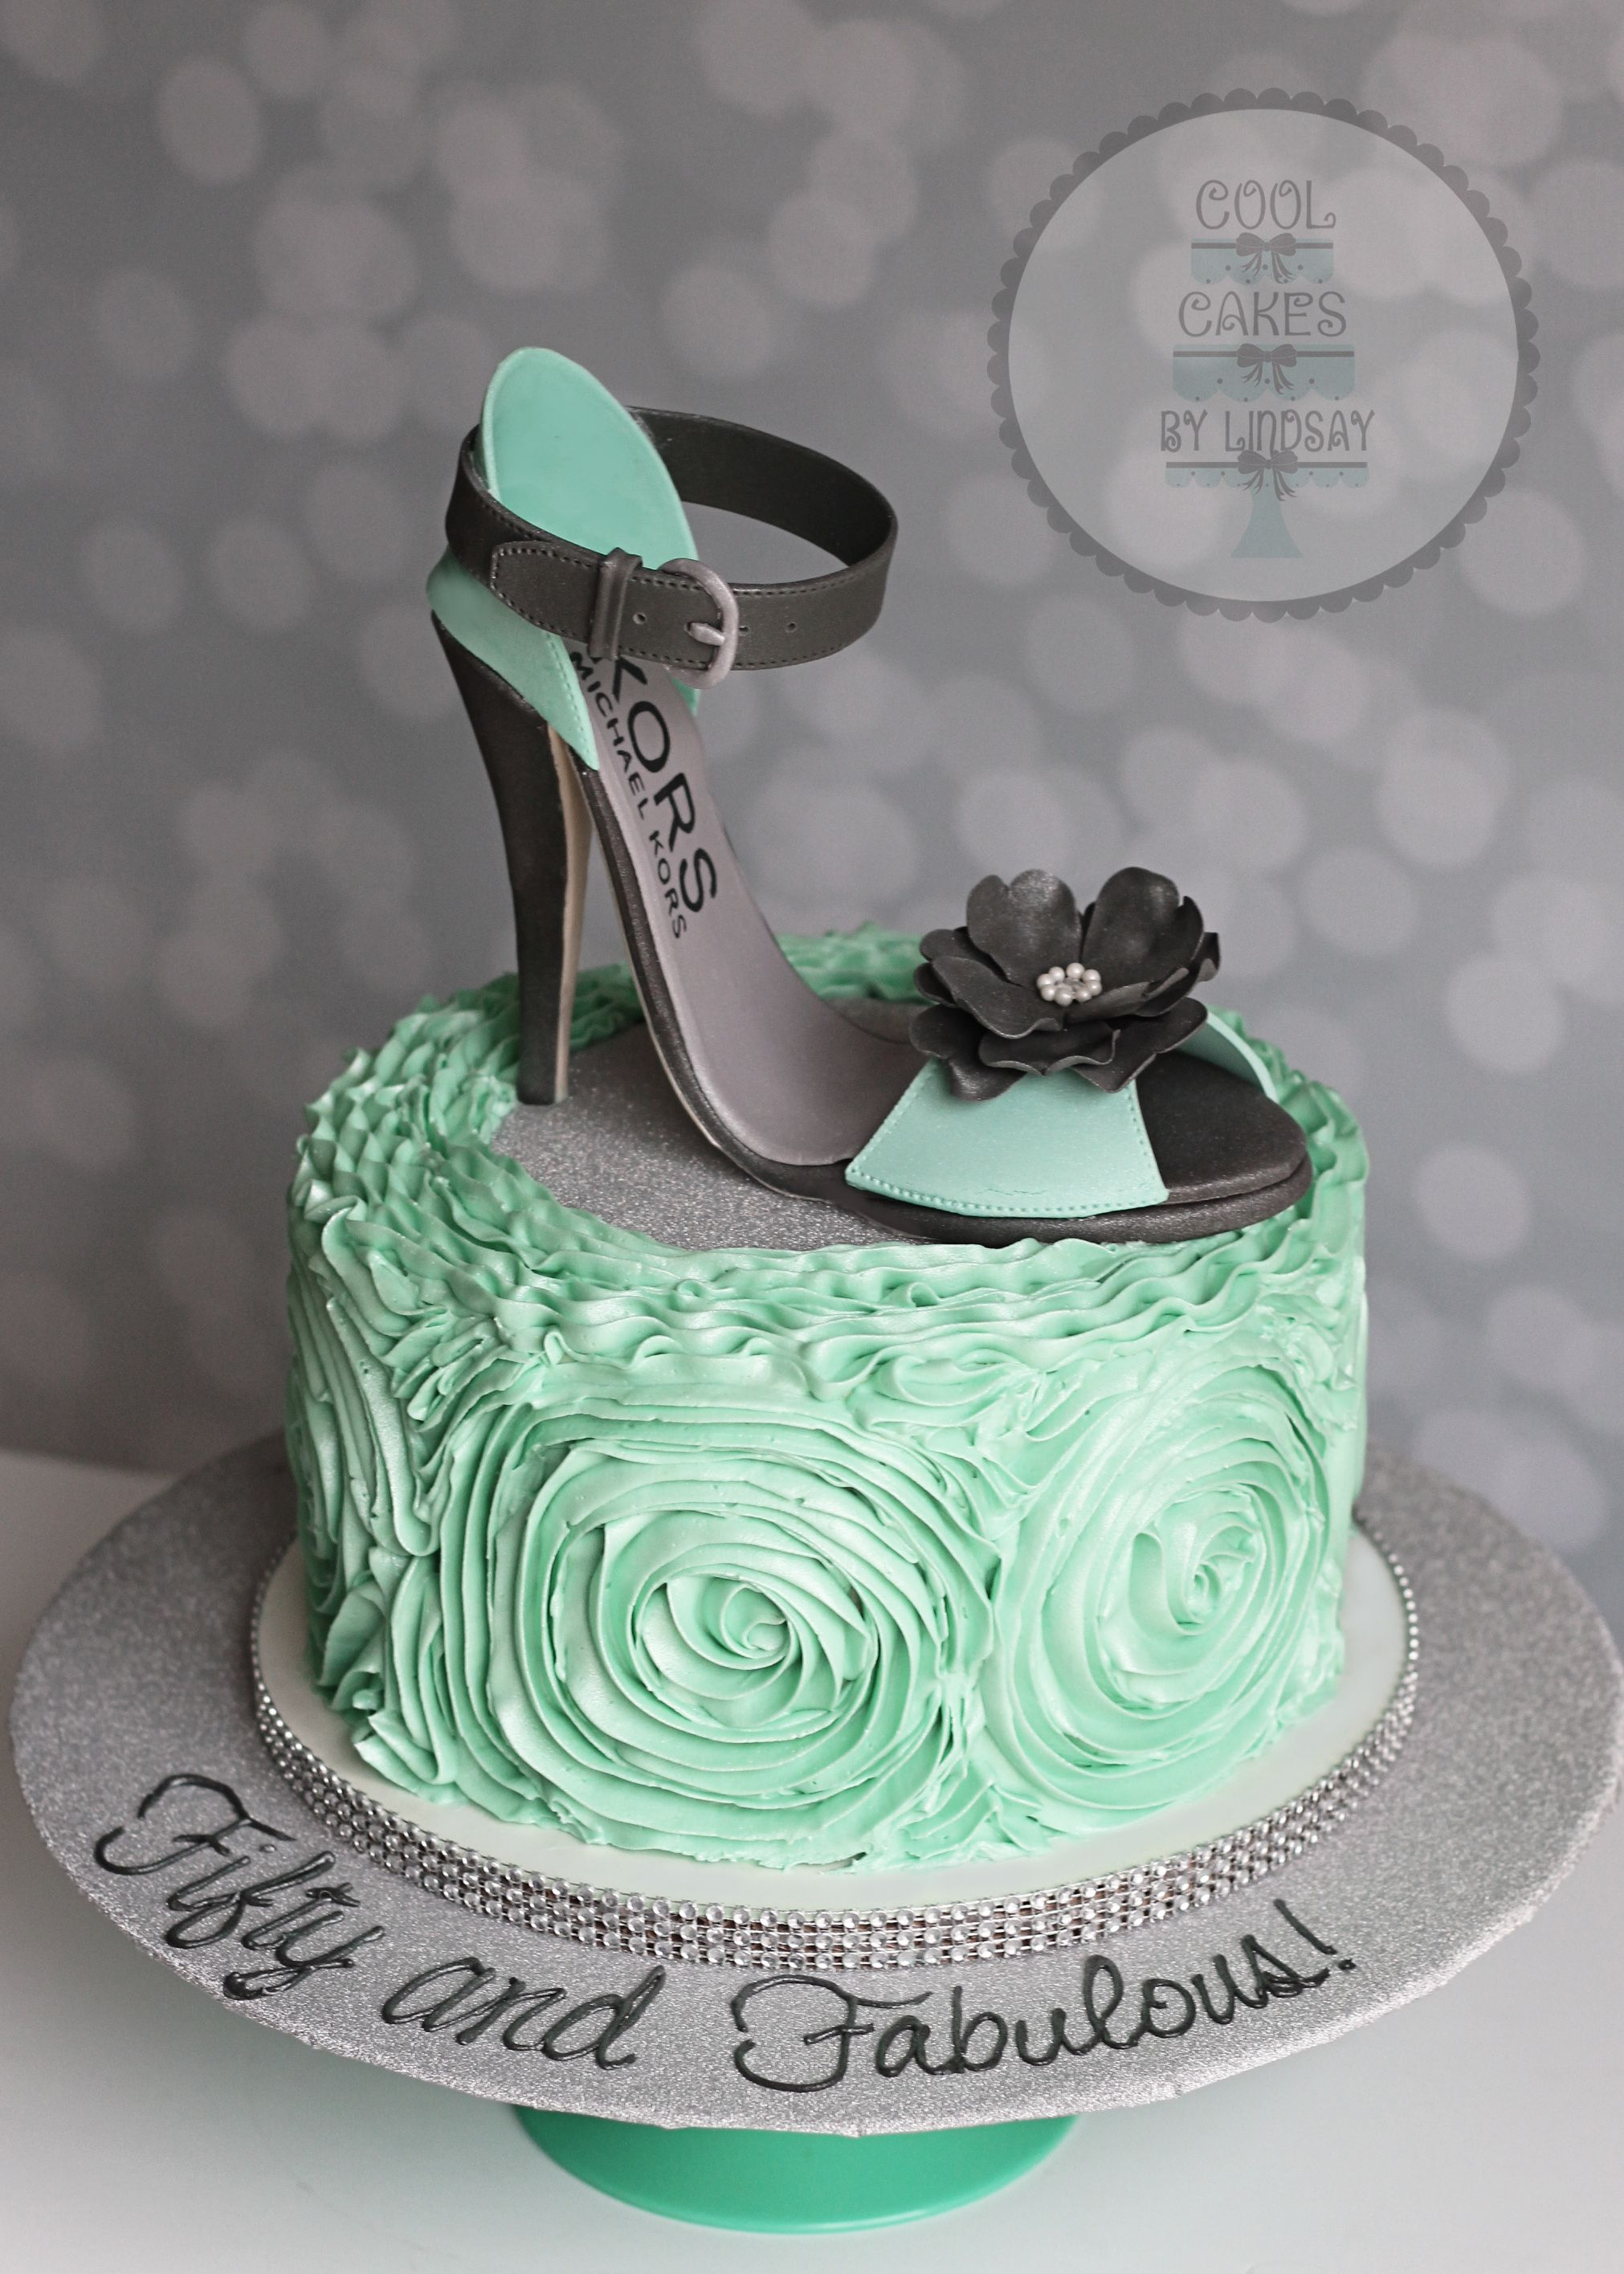 Michael Kors Mk Stiletto Shoe Cake Edible Fondant High Heel